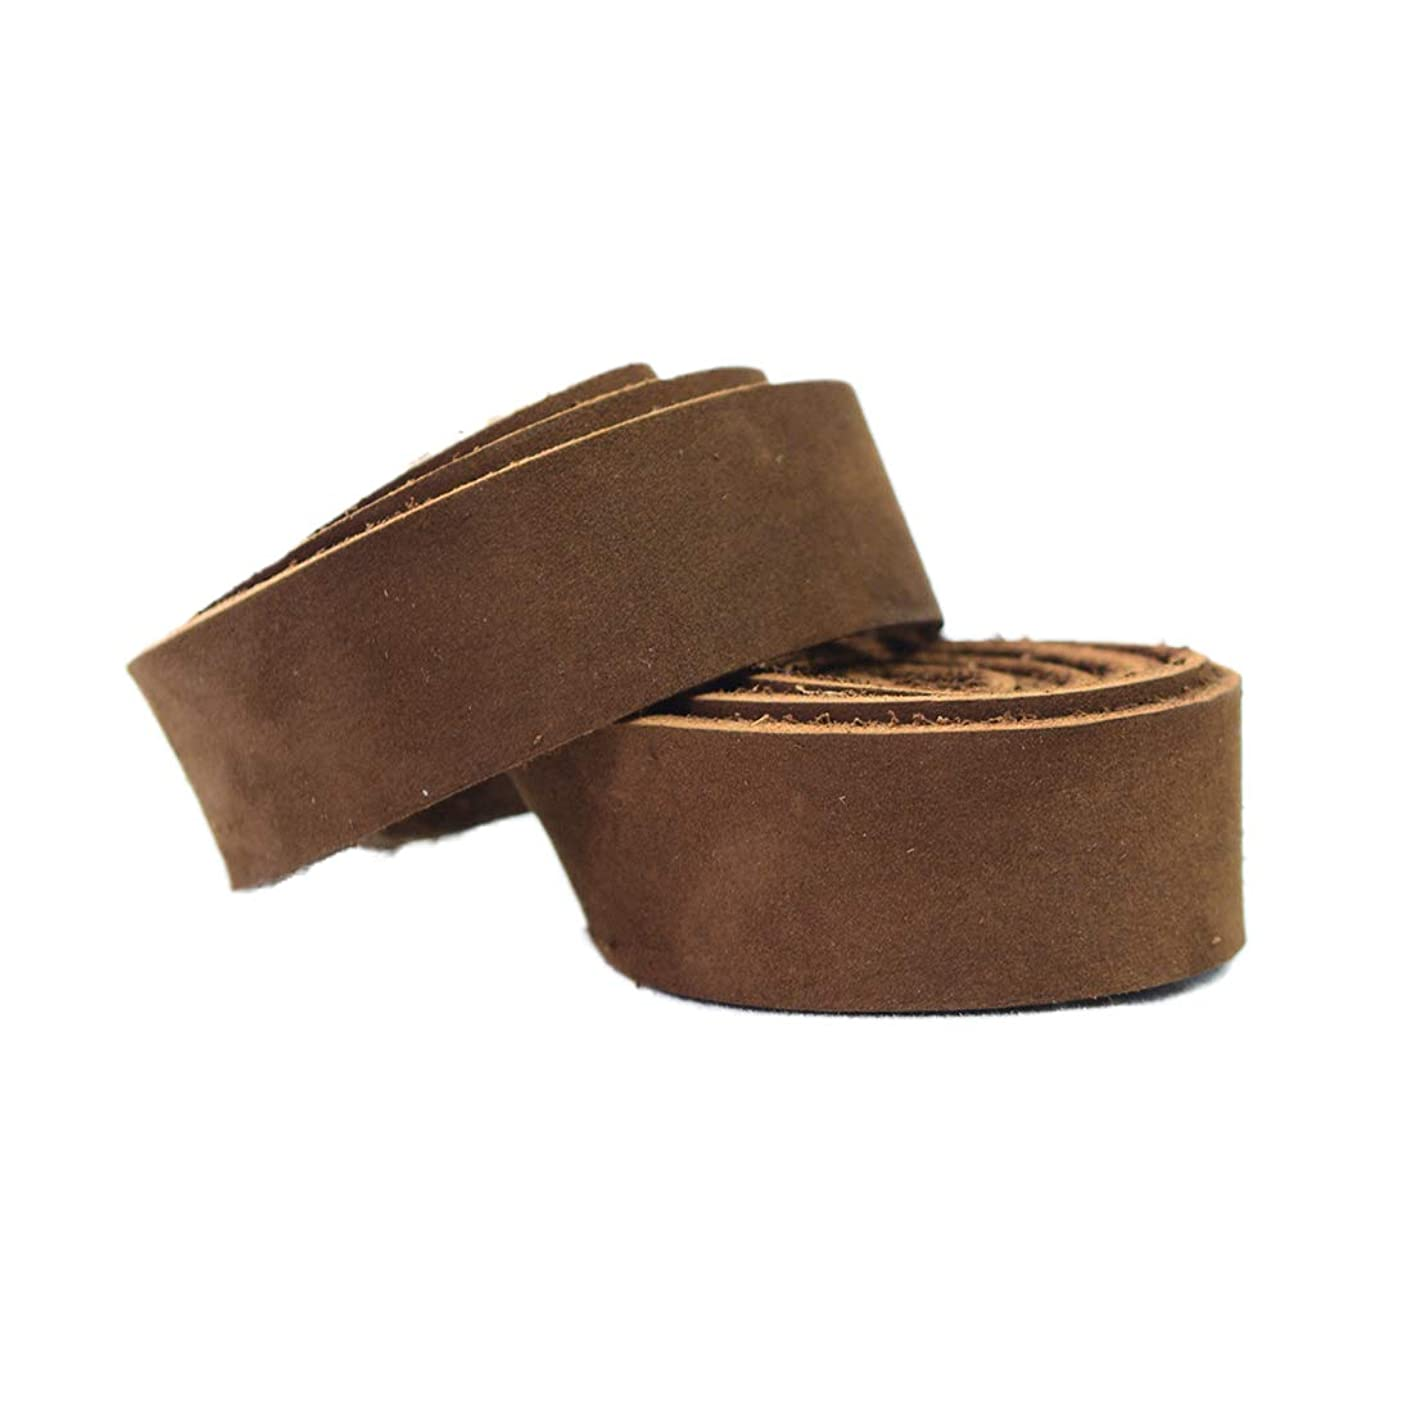 Hide & Drink, Leather Strong Strap 3/4